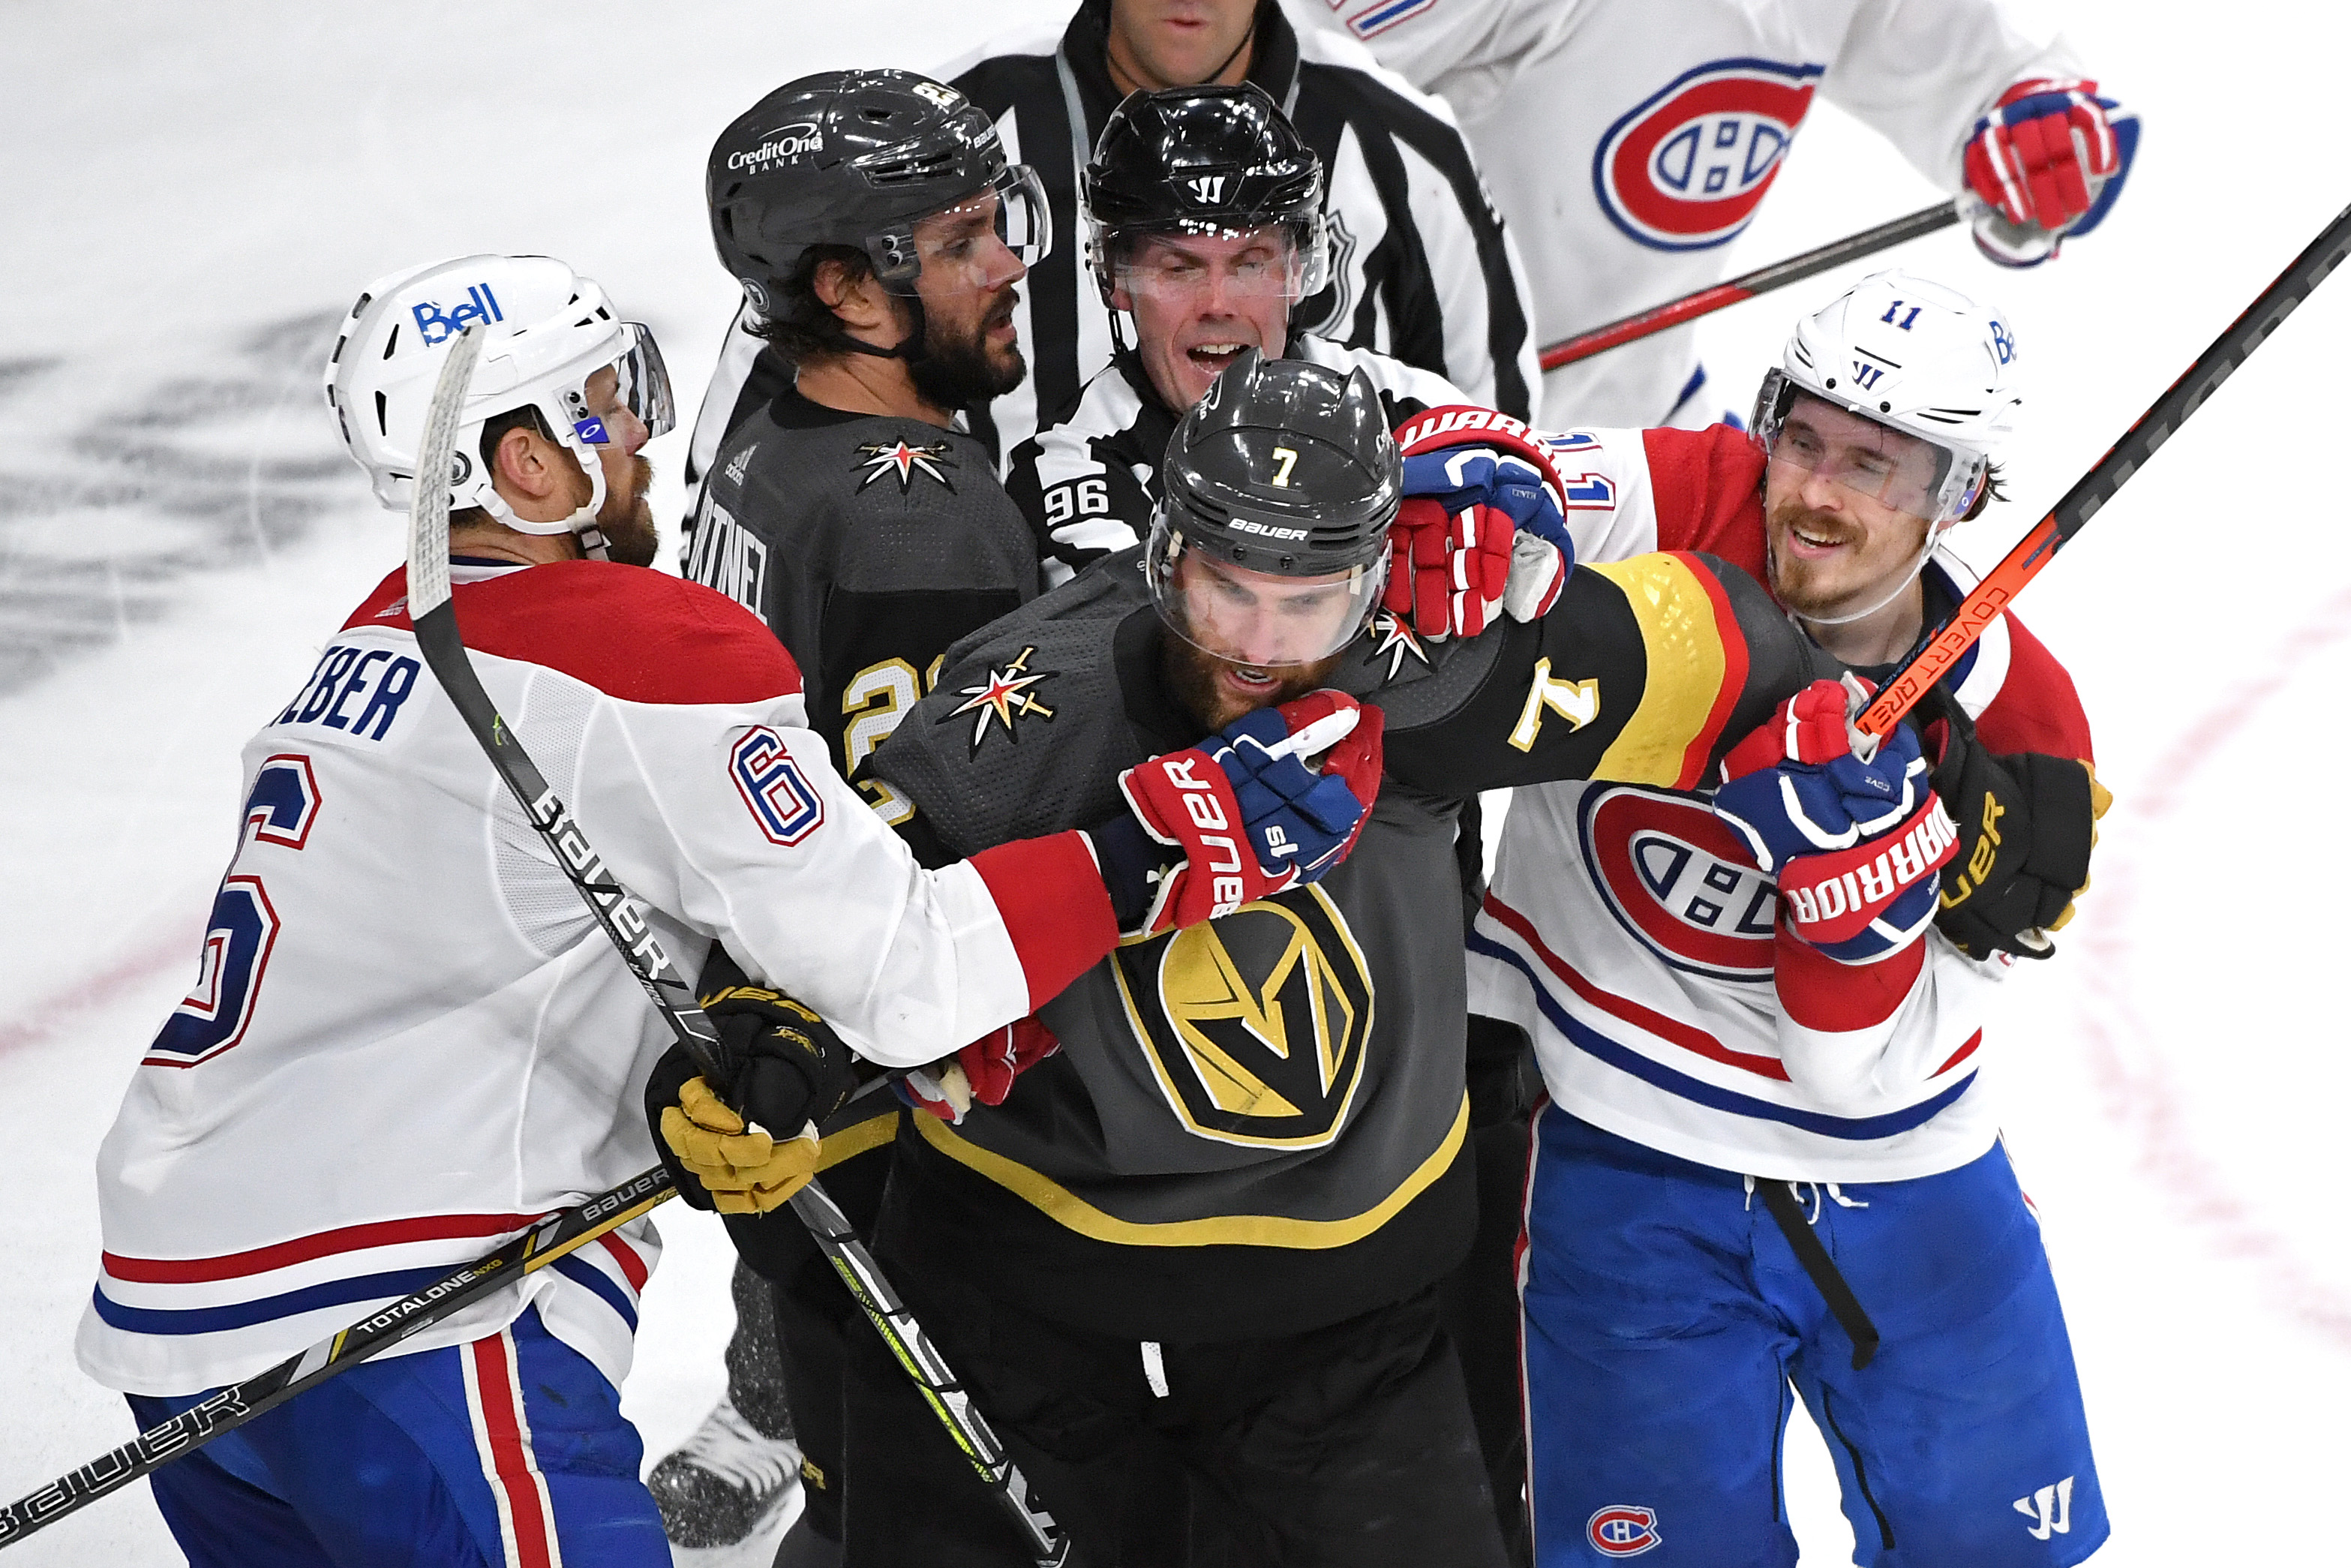 Alec Martinez #23 and Alex Pietrangelo #7 of the Vegas Golden Knights scuffle with Shea Weber #6 and Brendan Gallagher #11 of the Montreal Canadiens during the second period in Game 5 of the Stanley Cup Semifinals of the 2021 Stanley Cup Playoffs at T-Mobile Arena on June 22, 2021 in Las Vegas, Nevada.